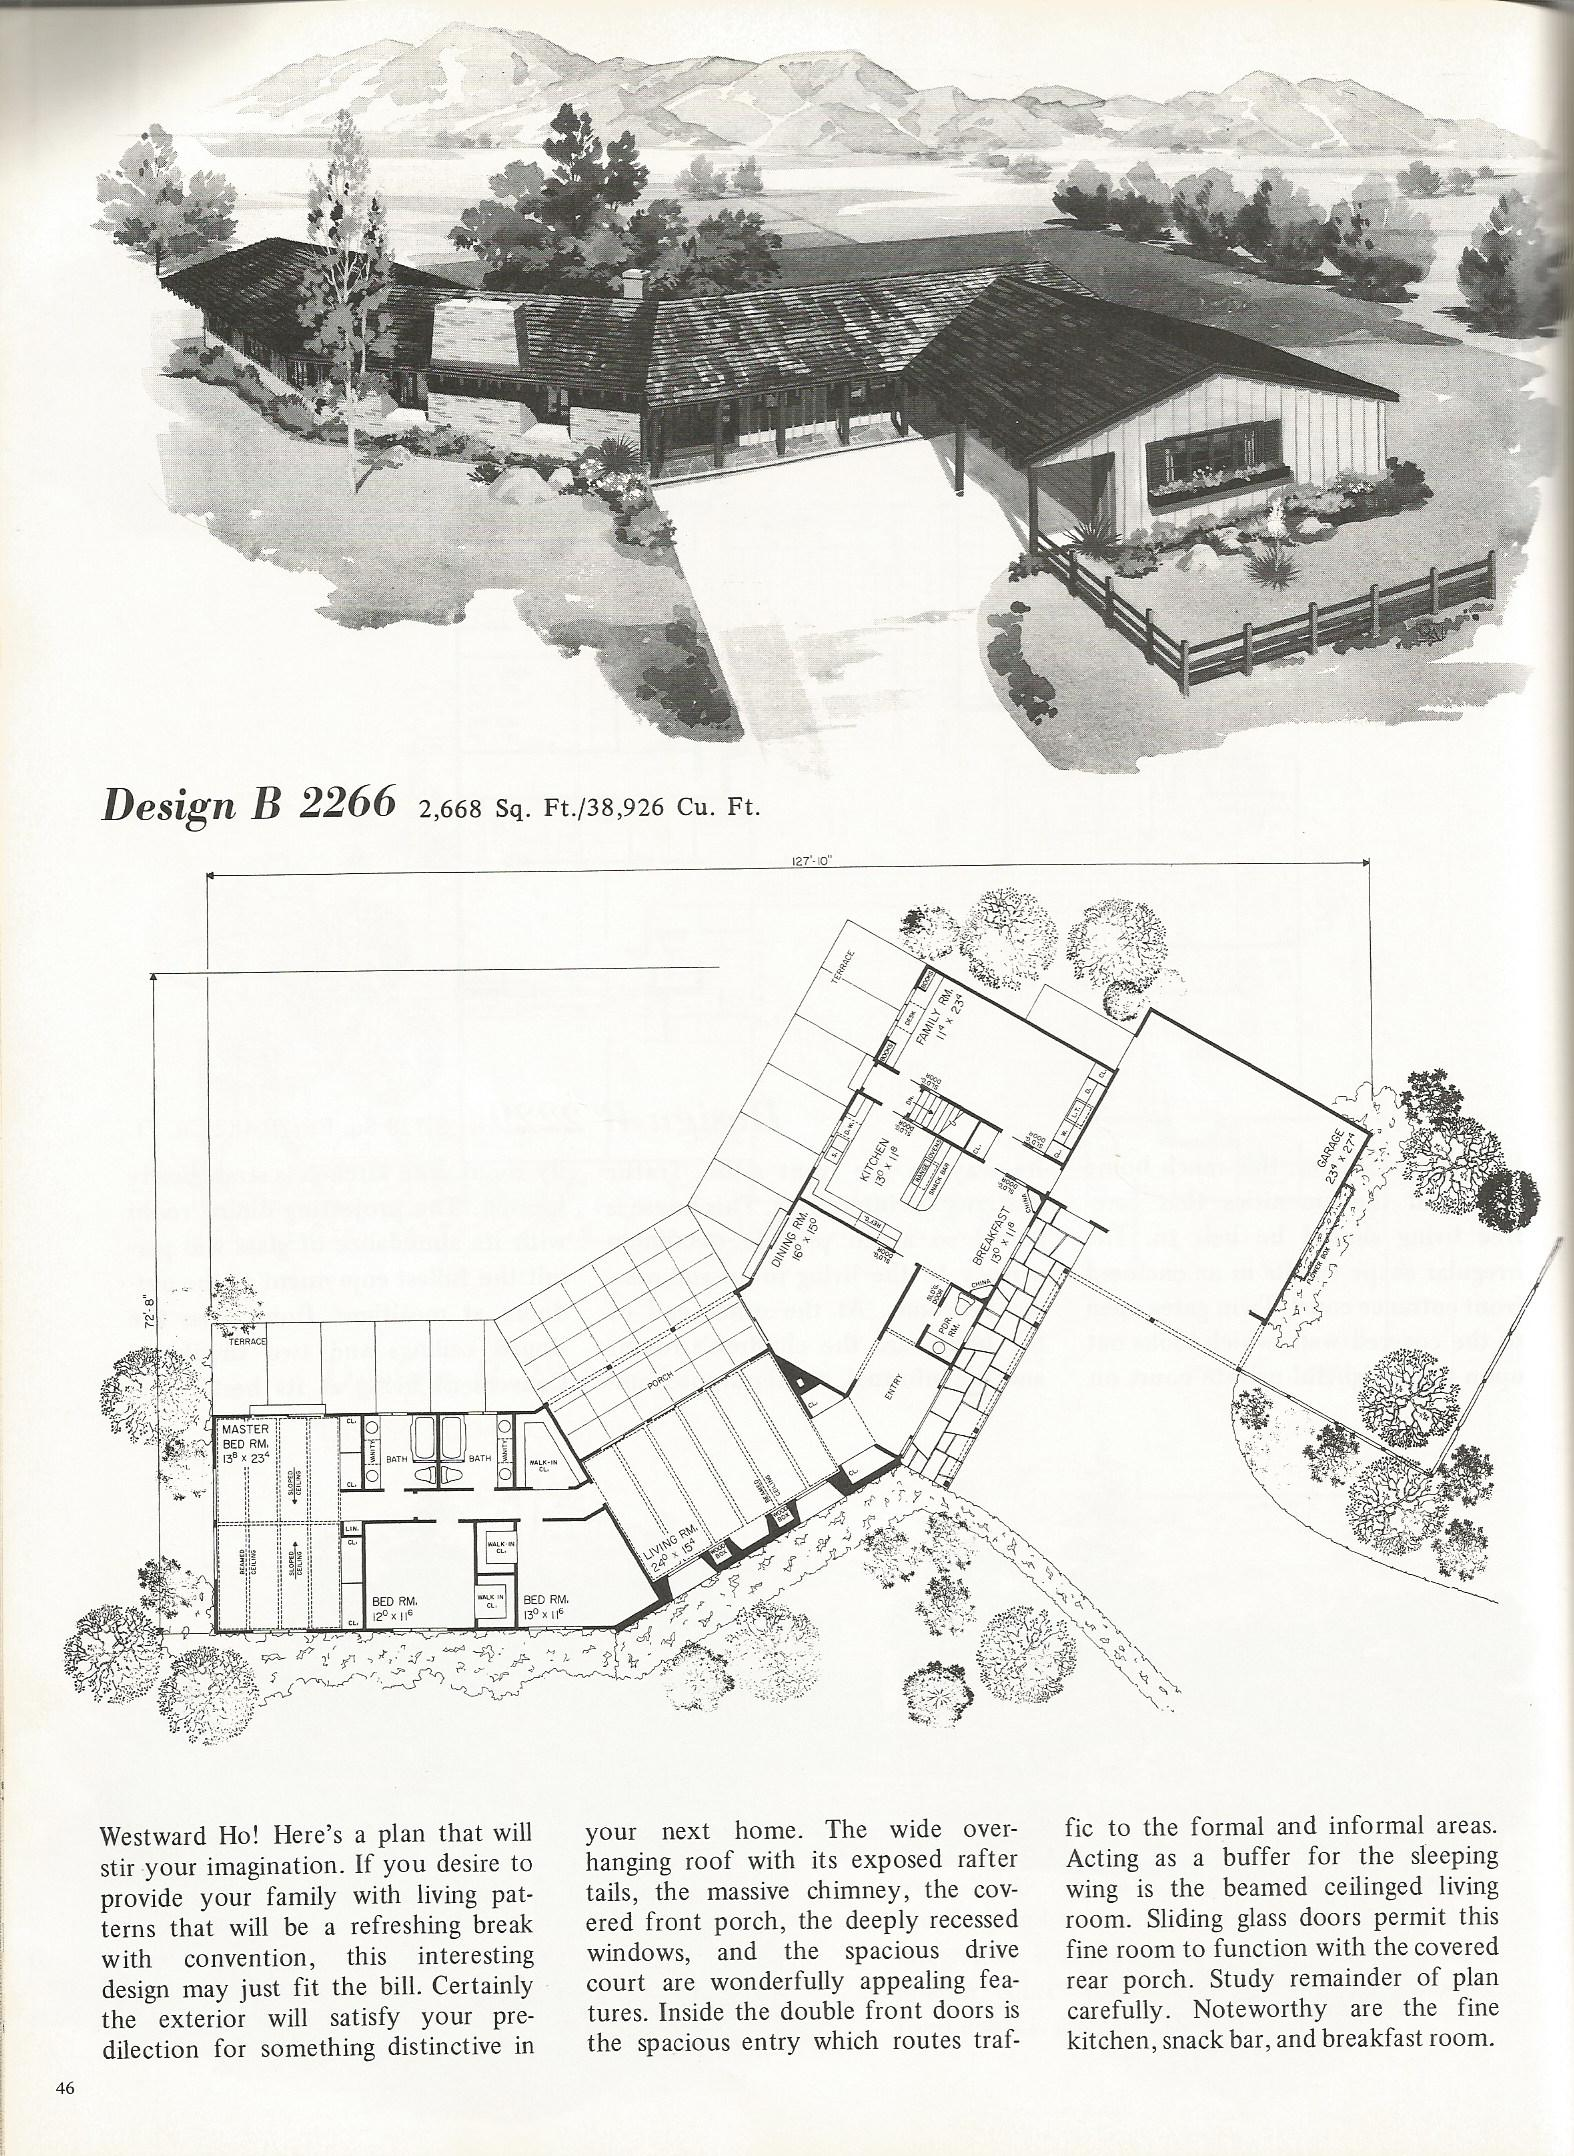 Vintage house plans 2266 antique alter ego for Western homes floor plans